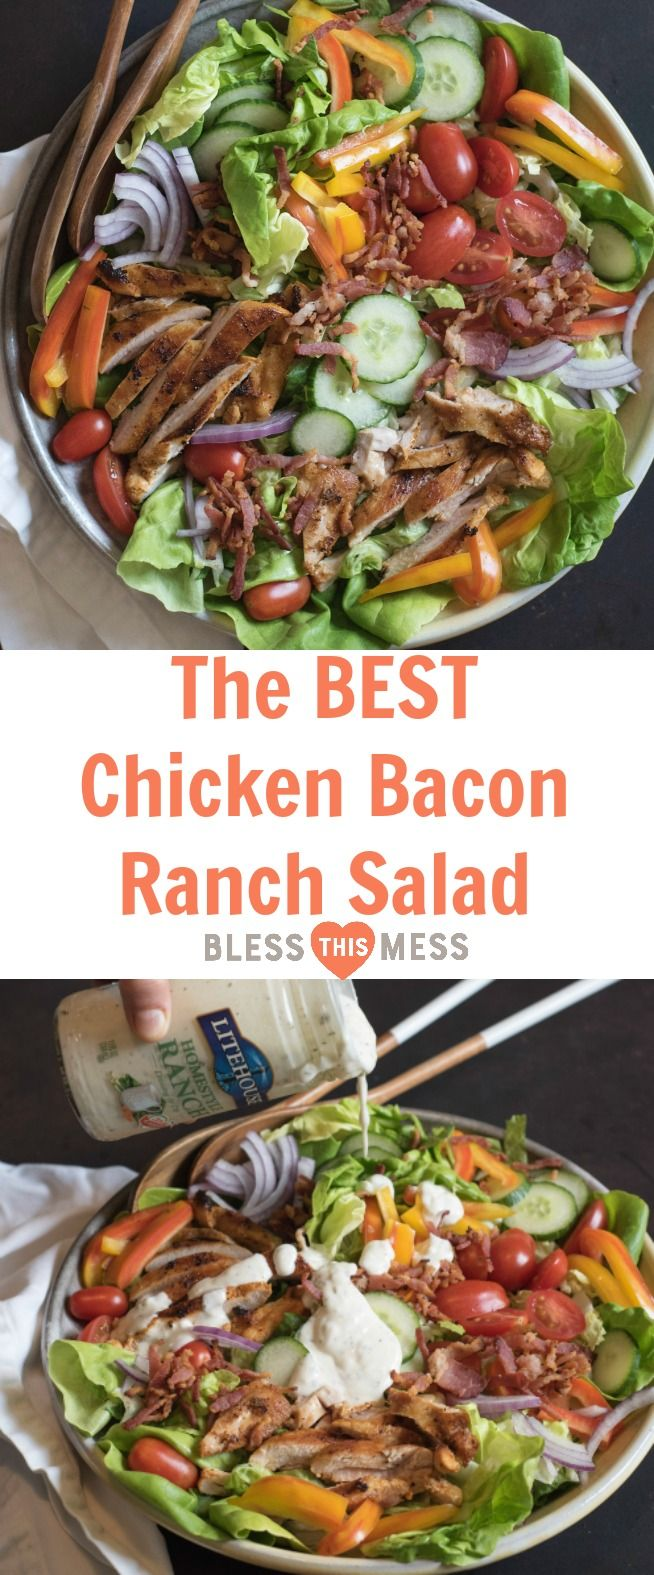 The BEST Chicken Bacon Ranch Salad of summer is a main dish green salad topped with all of your favorite things such as pan seared chicken, bacon, tomatoes, cucumber, and plenty of ranch dressing! AD